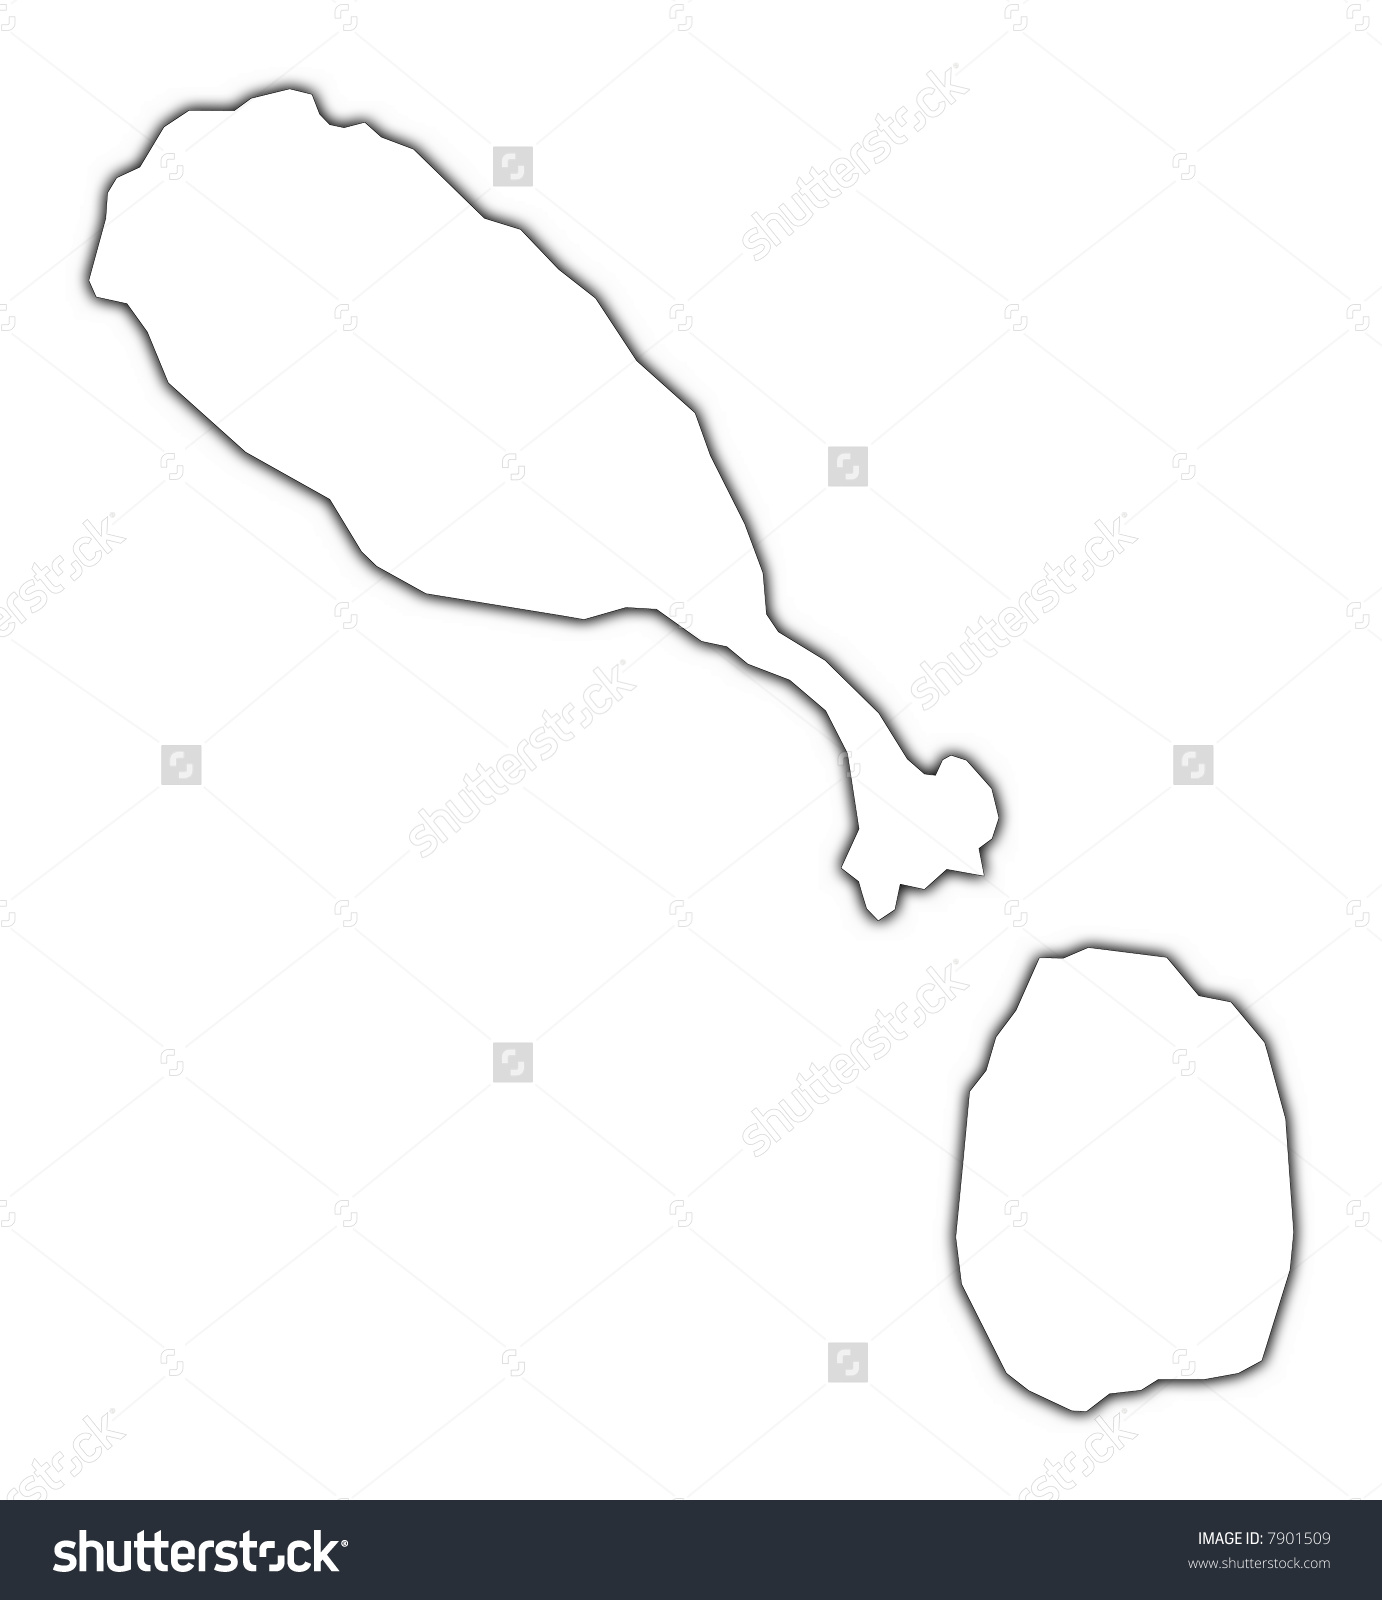 Saint Kitts Nevis Outline Map Shadow Stock Illustration 7901509.